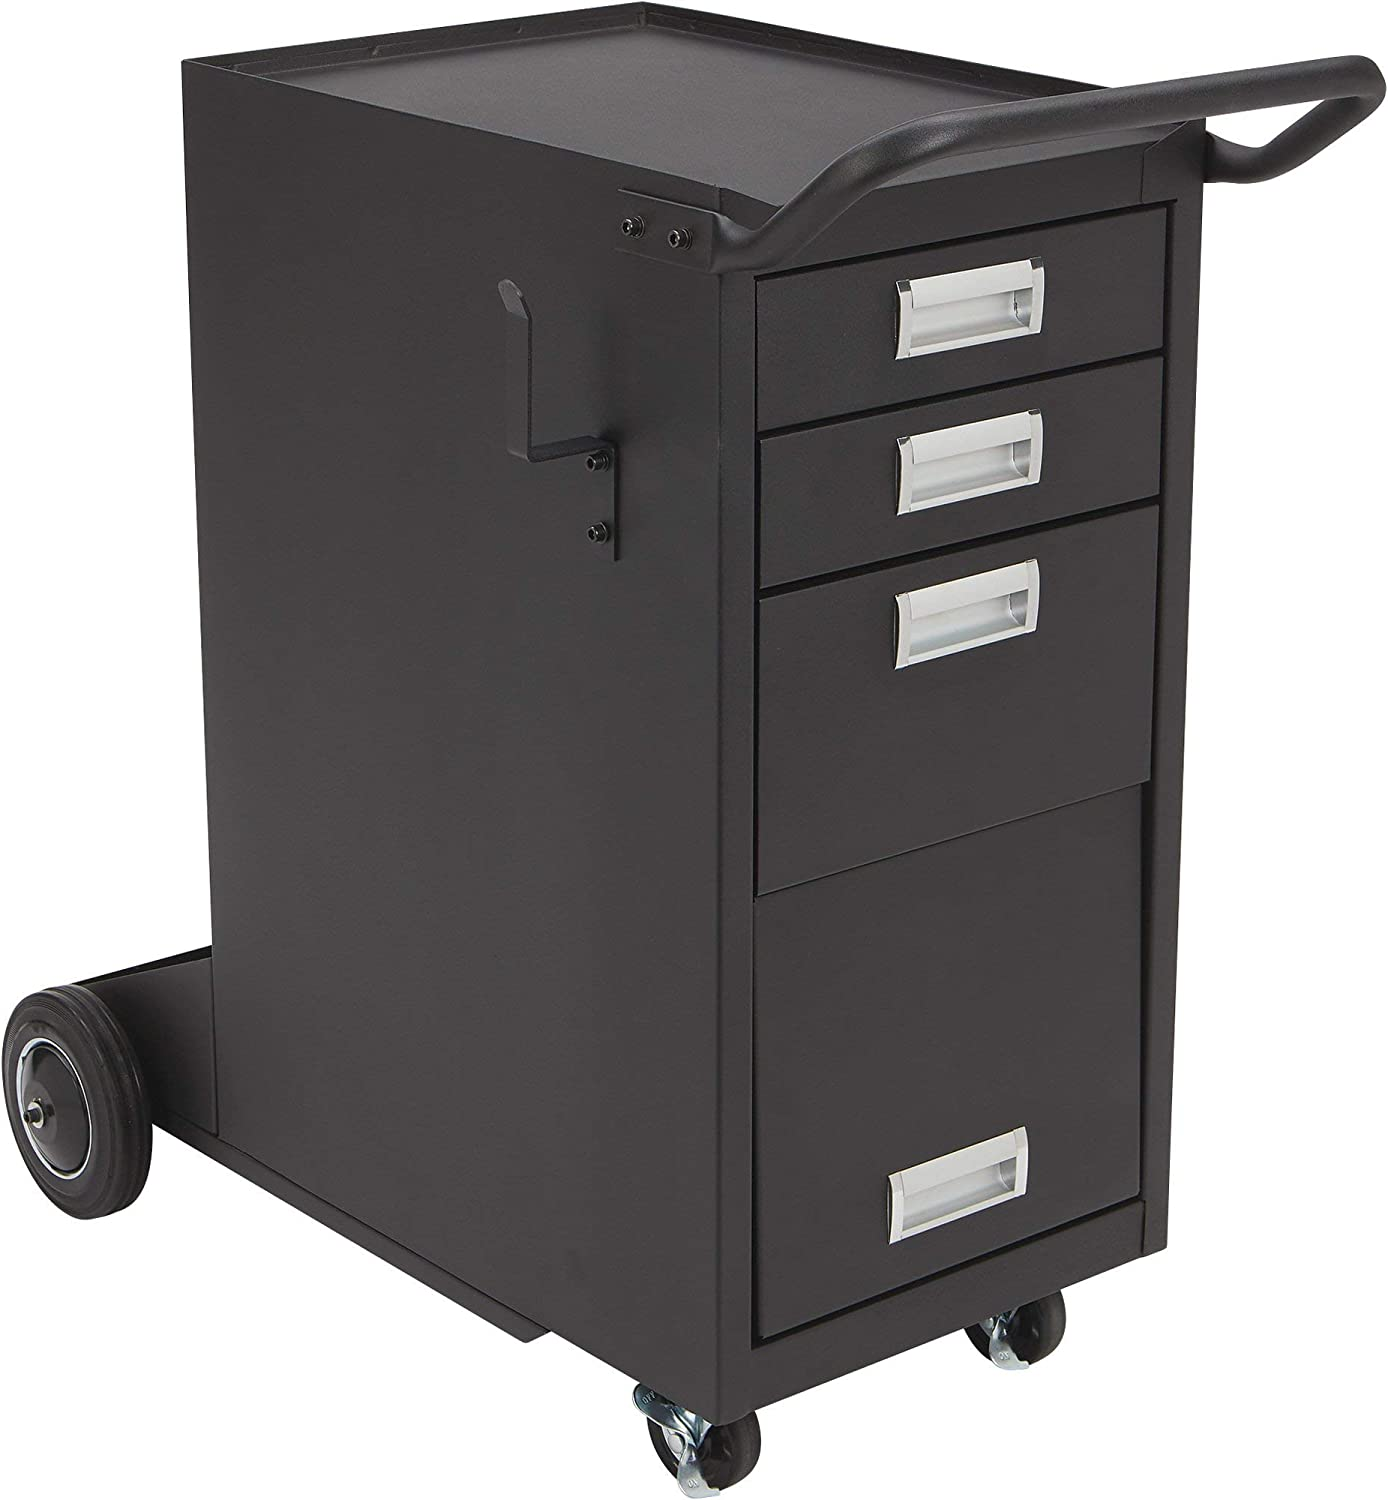 Klutch Deluxe 3-Drawer Welding Cabinet with Enclosed Storage 33 1//2in.L x 19 11//16in.W x 32 1//4in.H